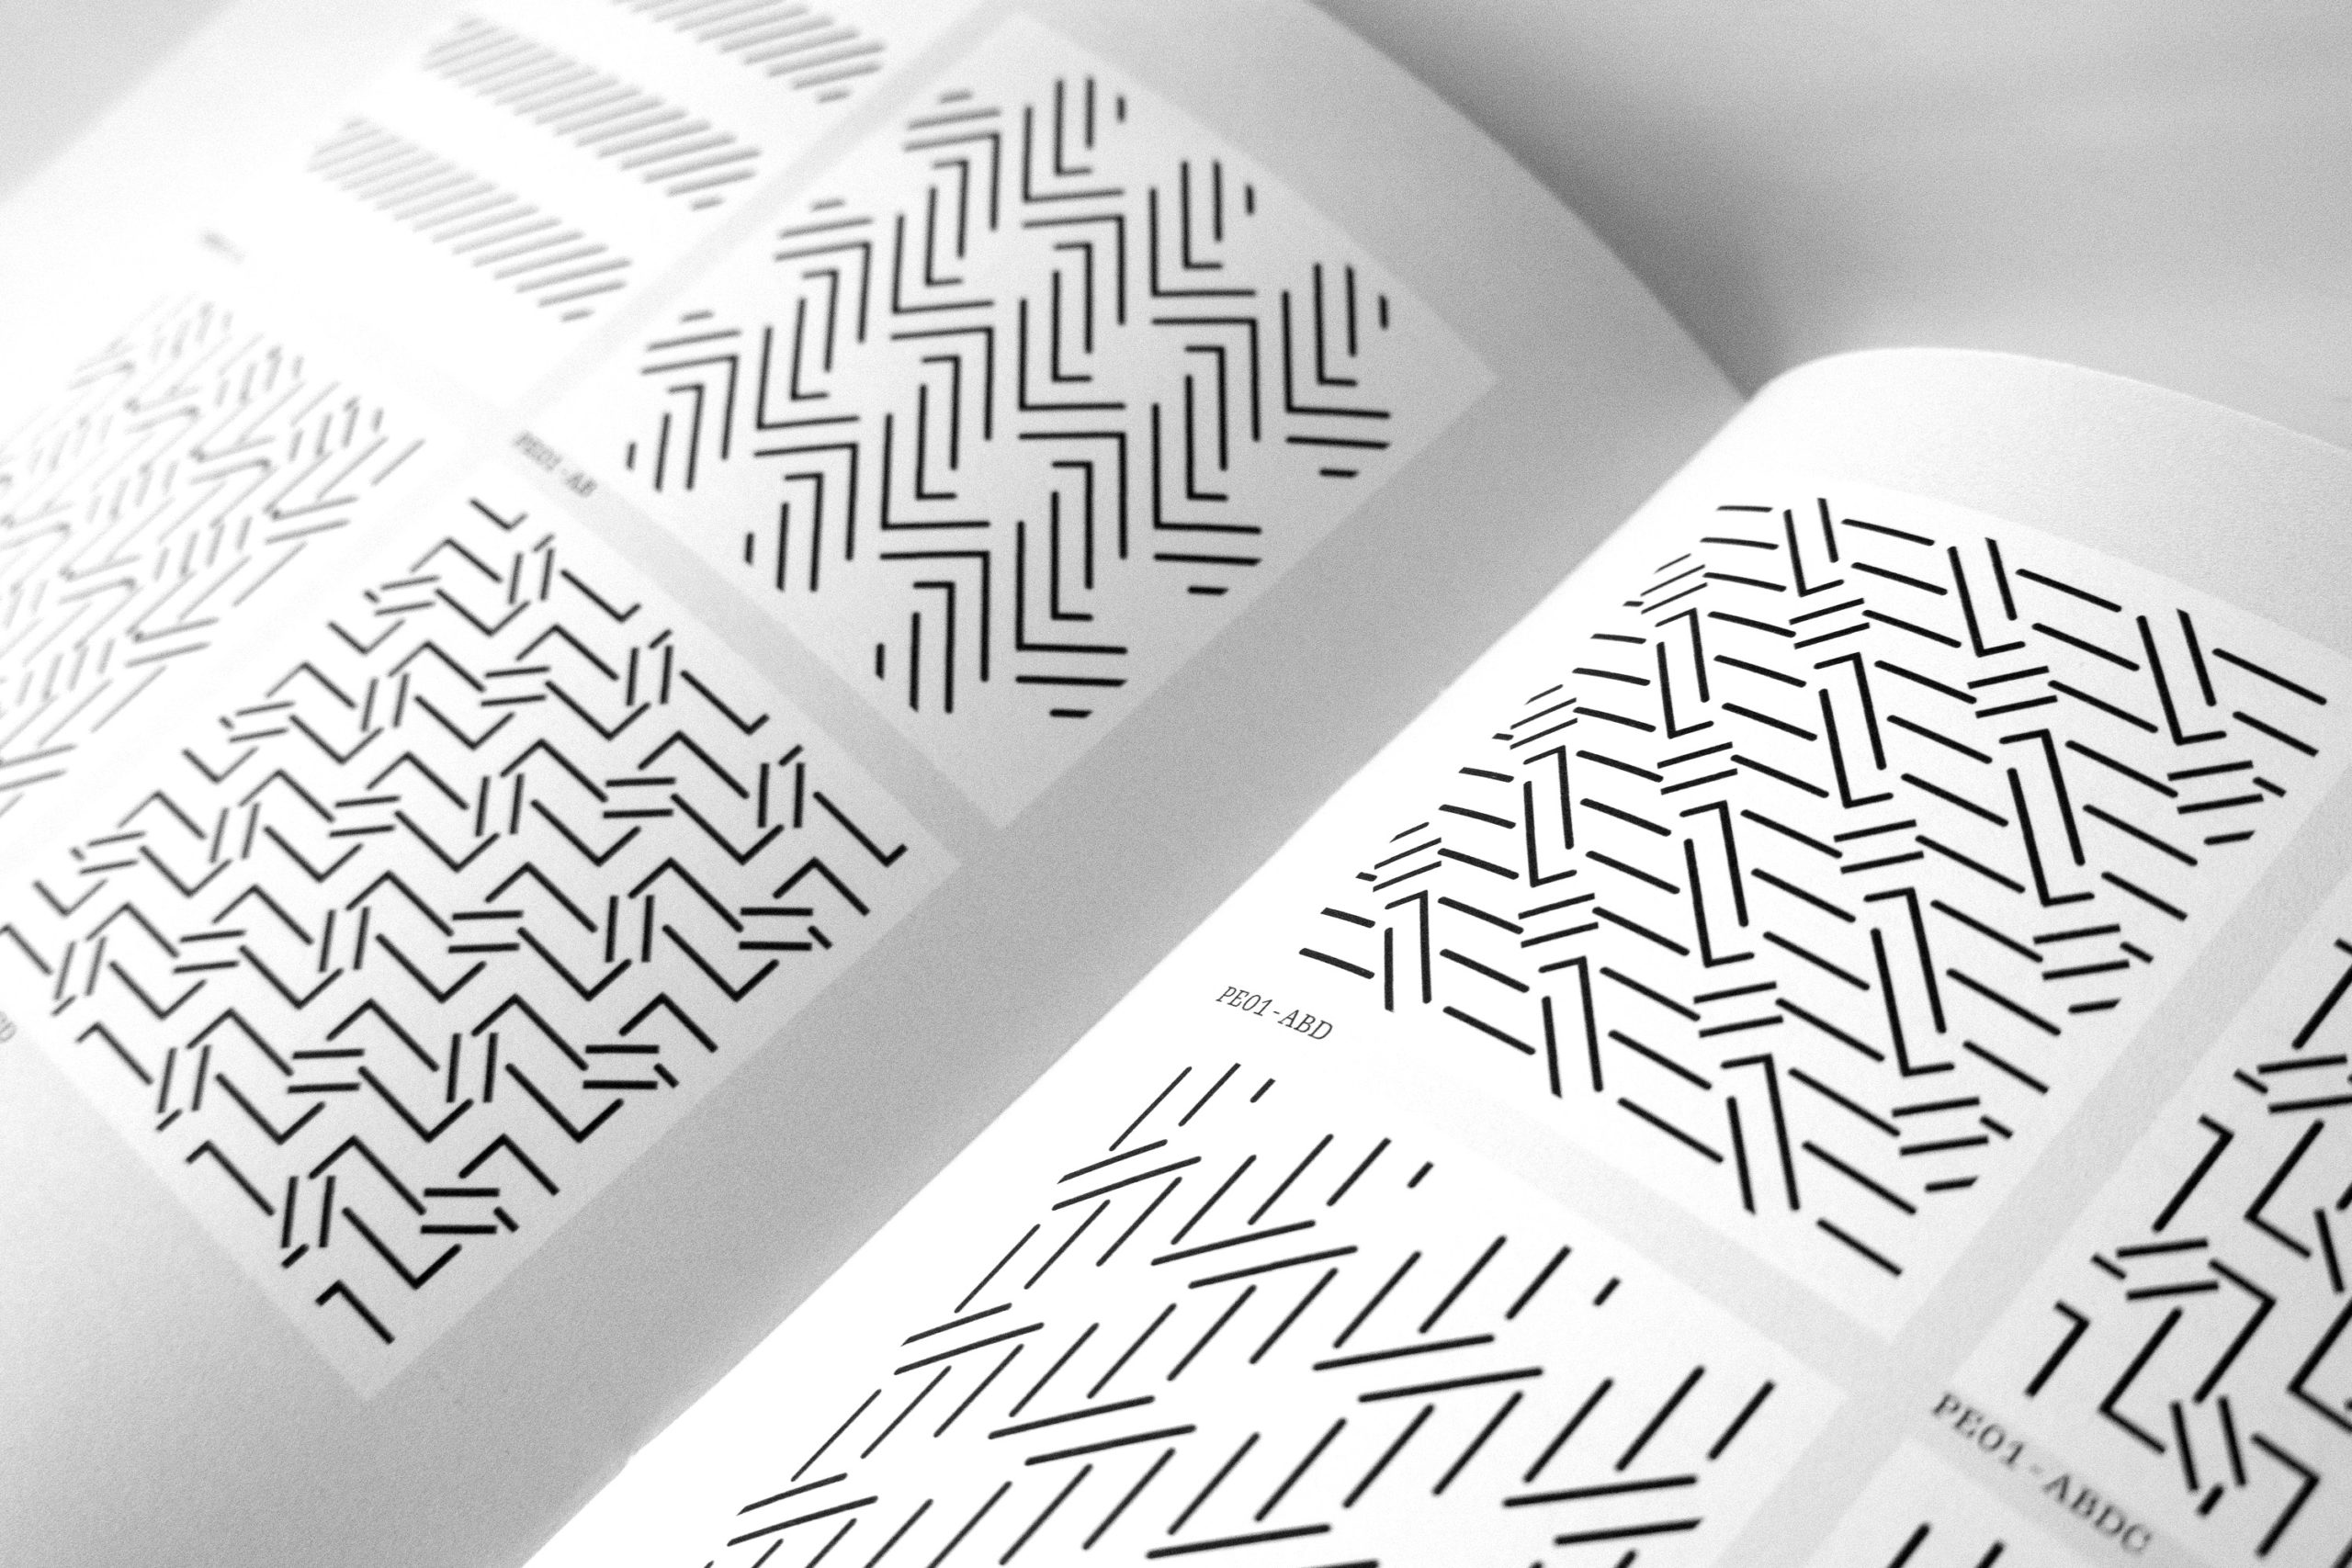 Generated patterns printed in an art zine